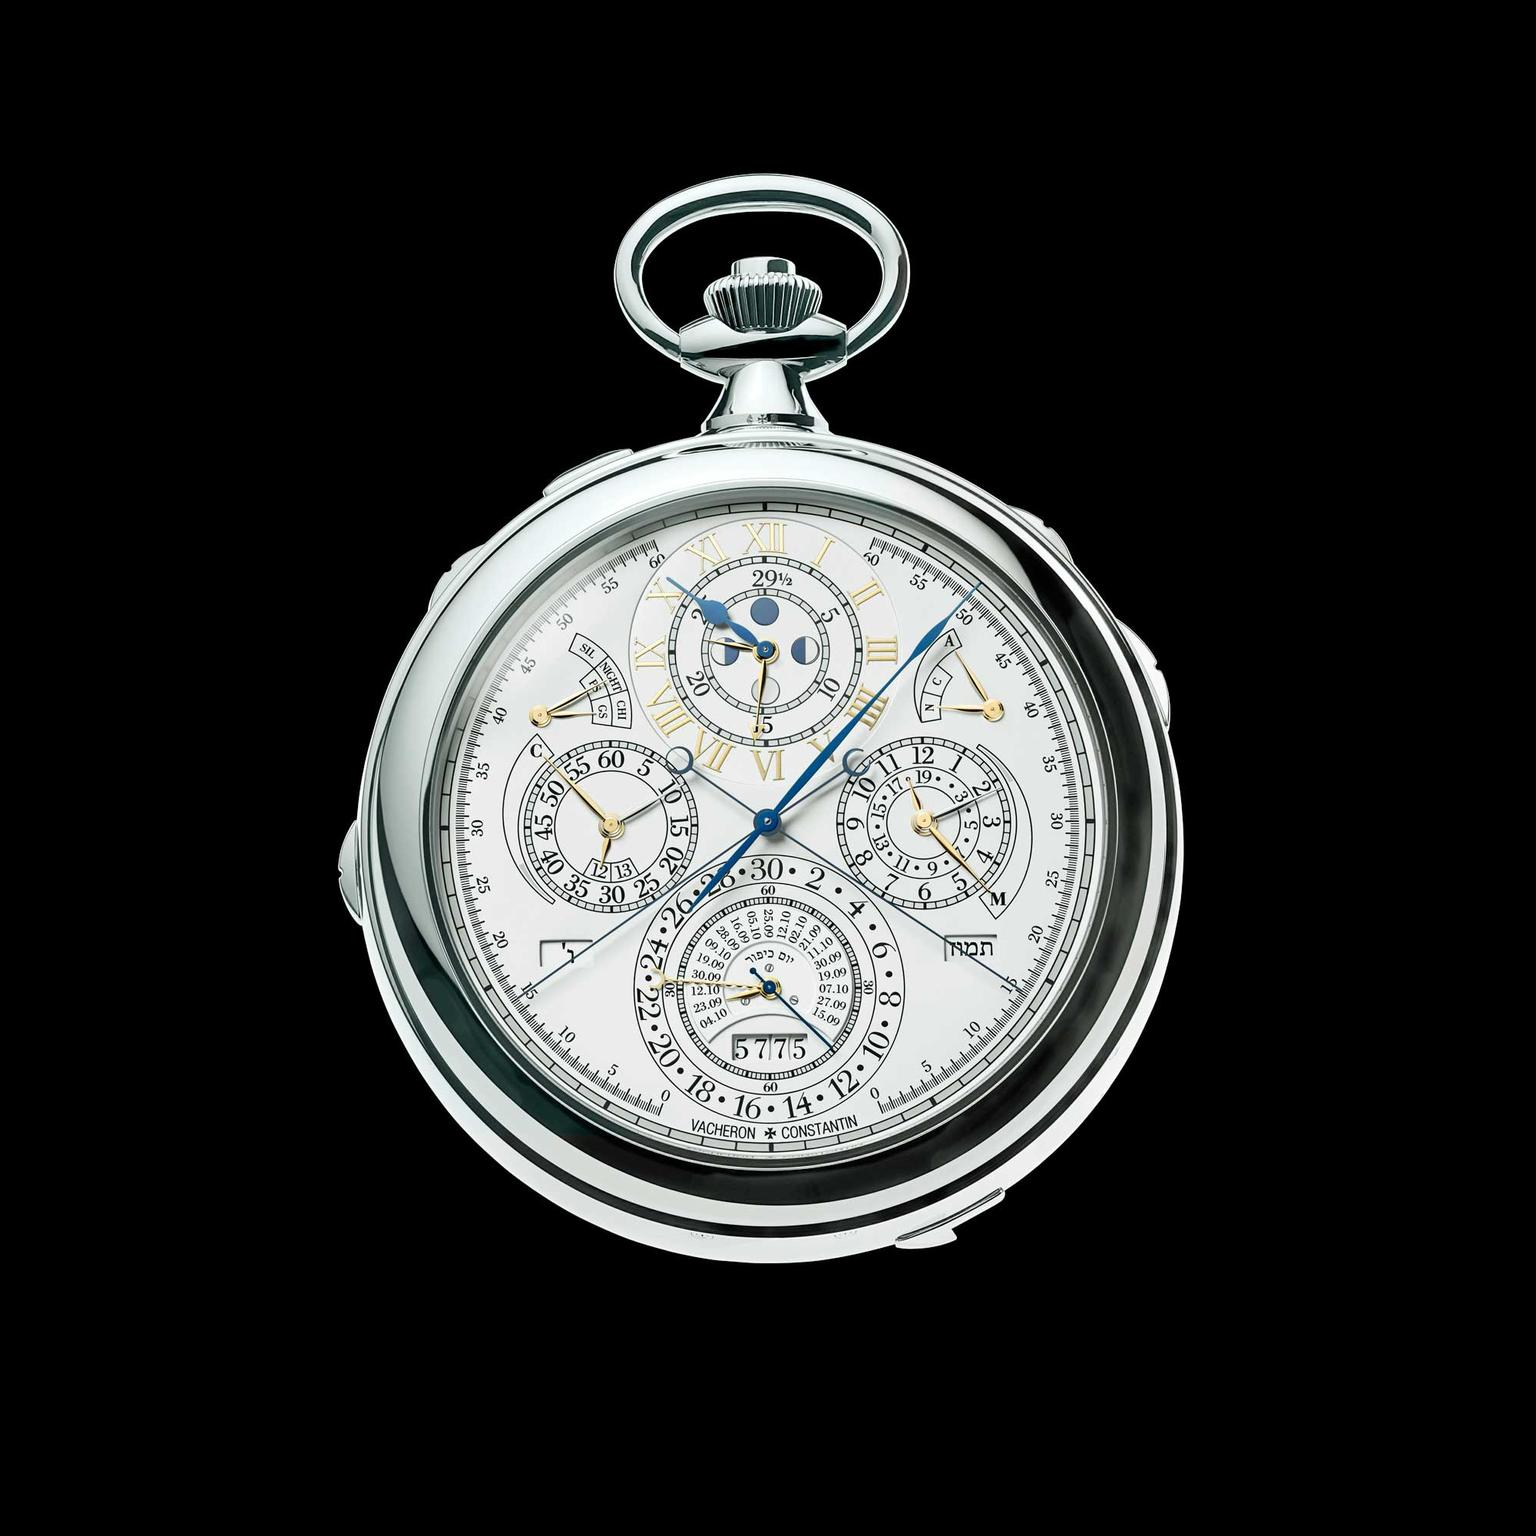 Vacheron Constantin Ref 57260 pocket watch